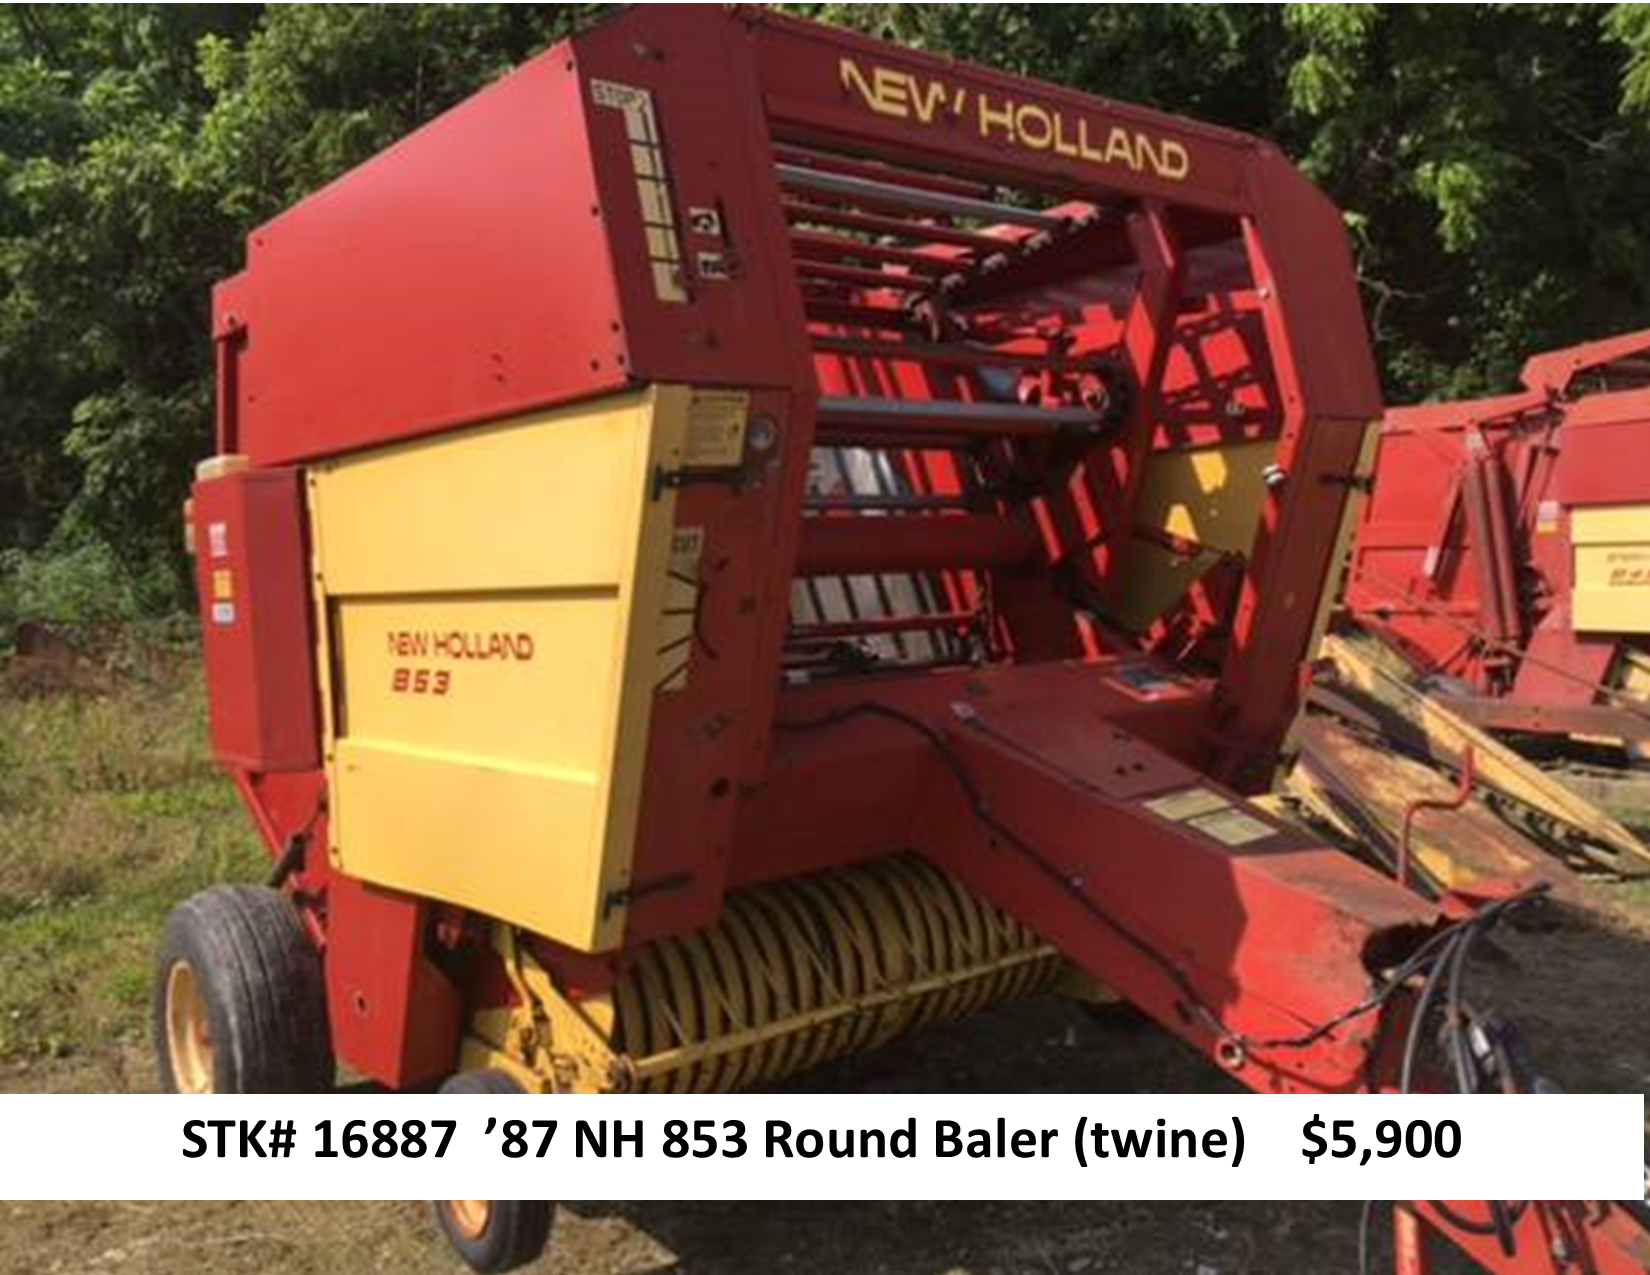 New Holland 853 Round Baler